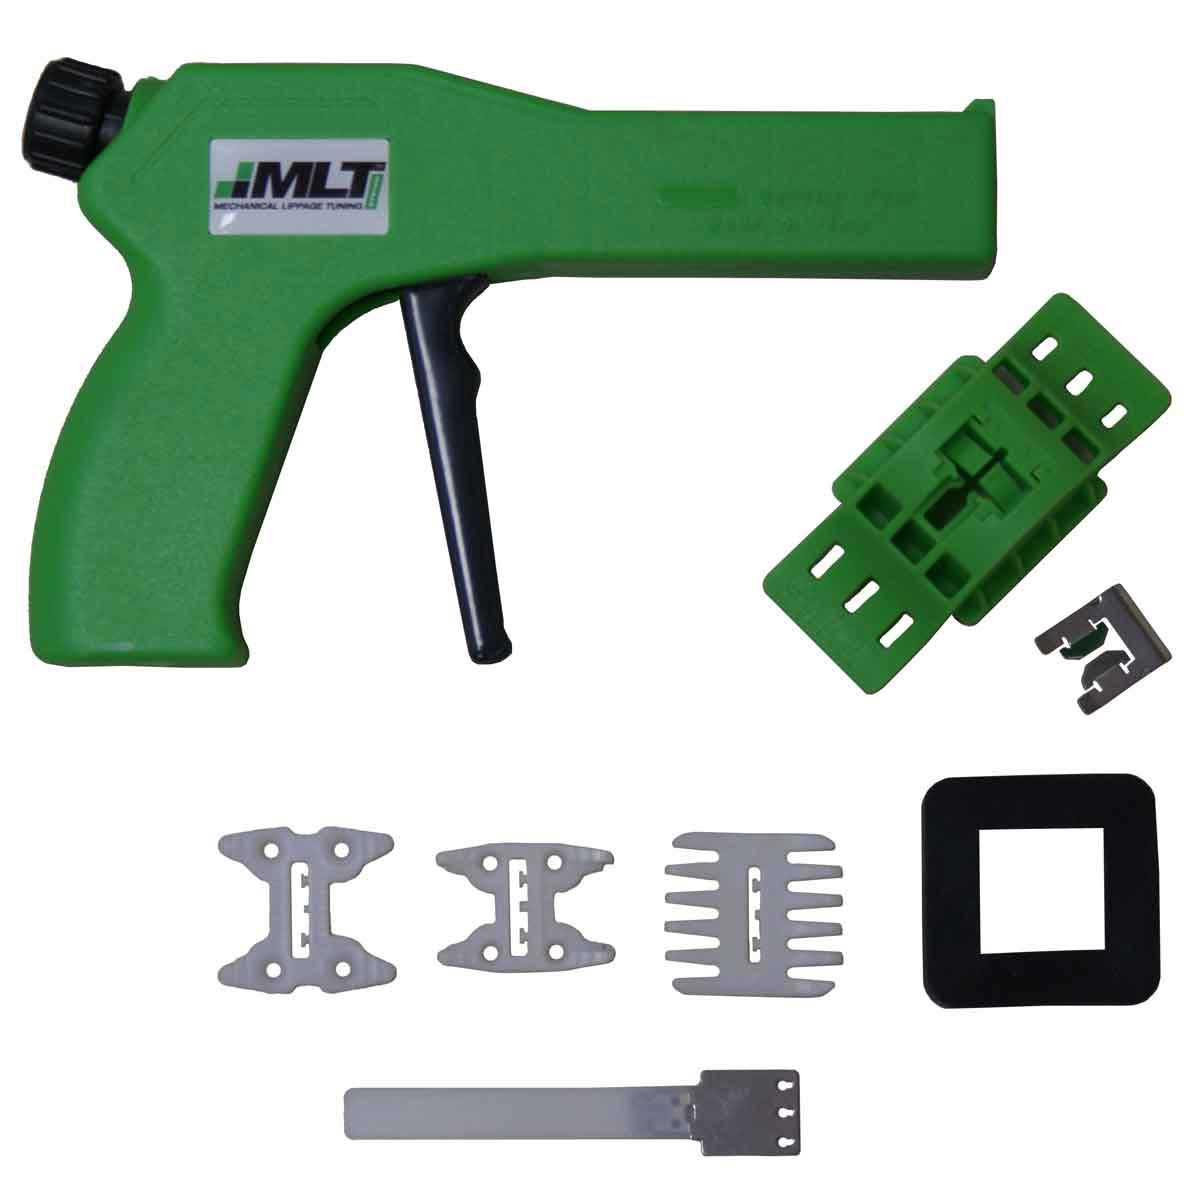 mlt ergonomic gun with kit assembly and reusable cap